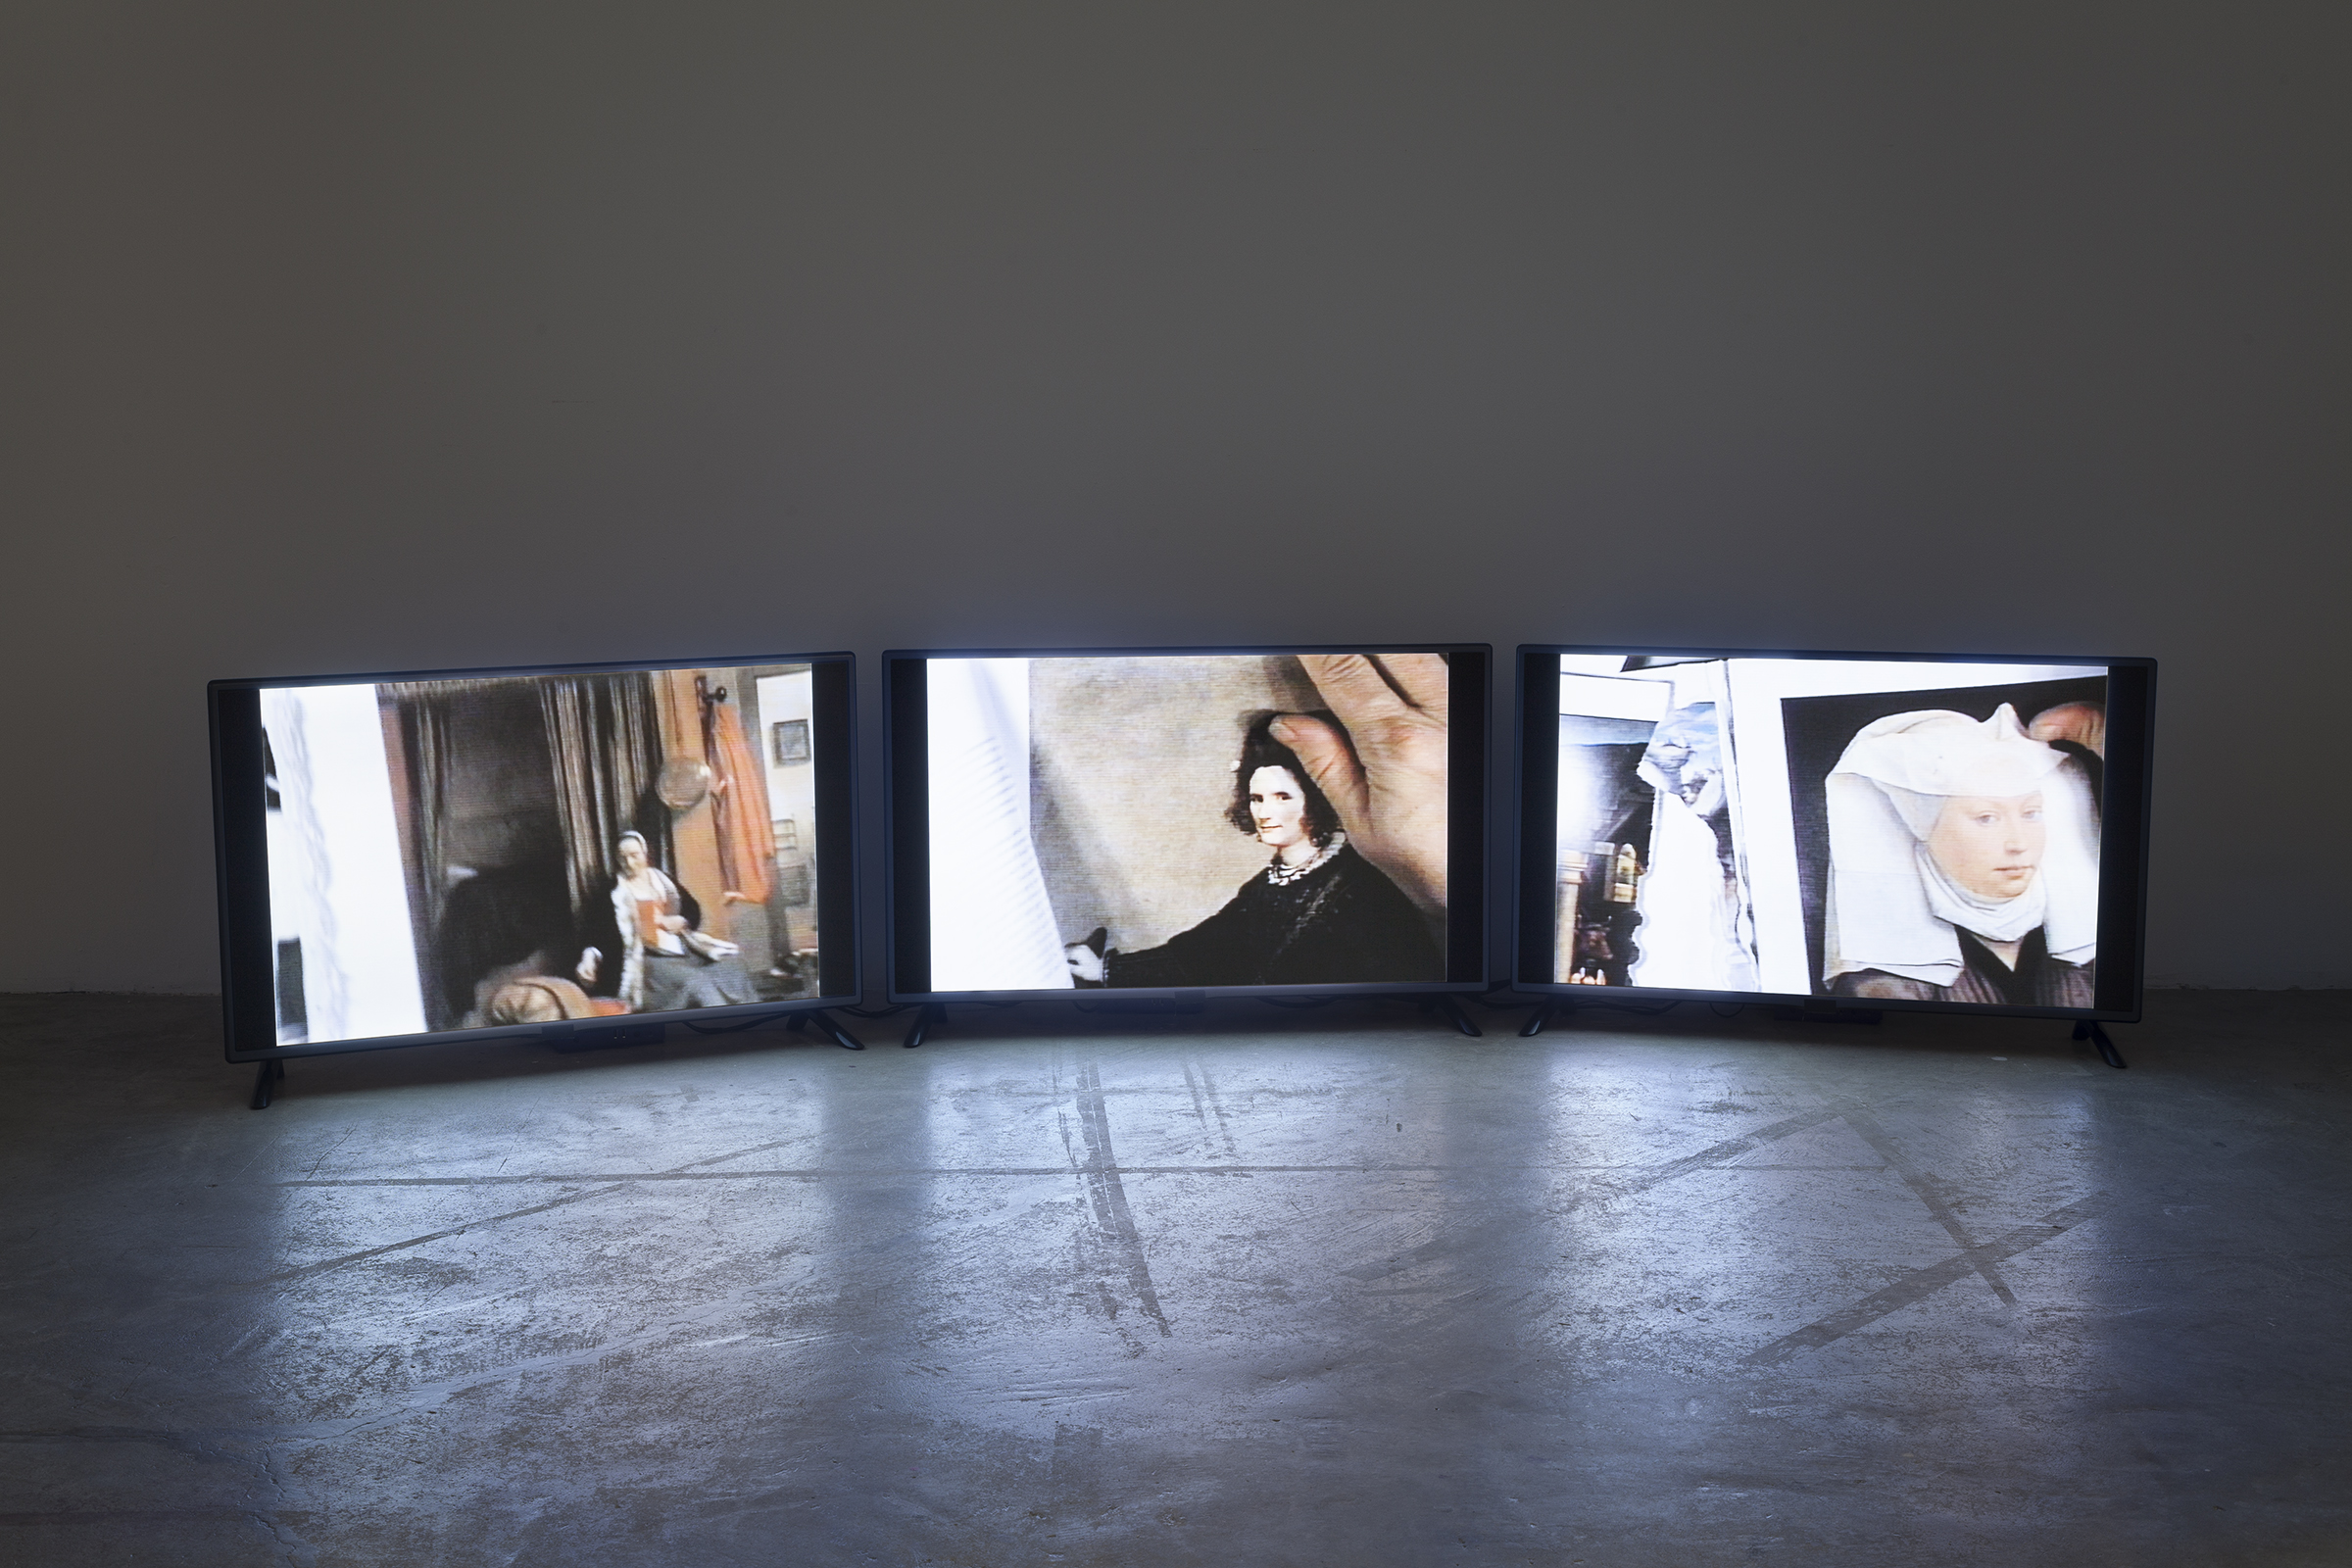 Michel Auder,  Gemälde I , 2015, 3 channel video installation, Betamax video transferred to digital video, loop, duration variable, Edition of 5 plus II AP